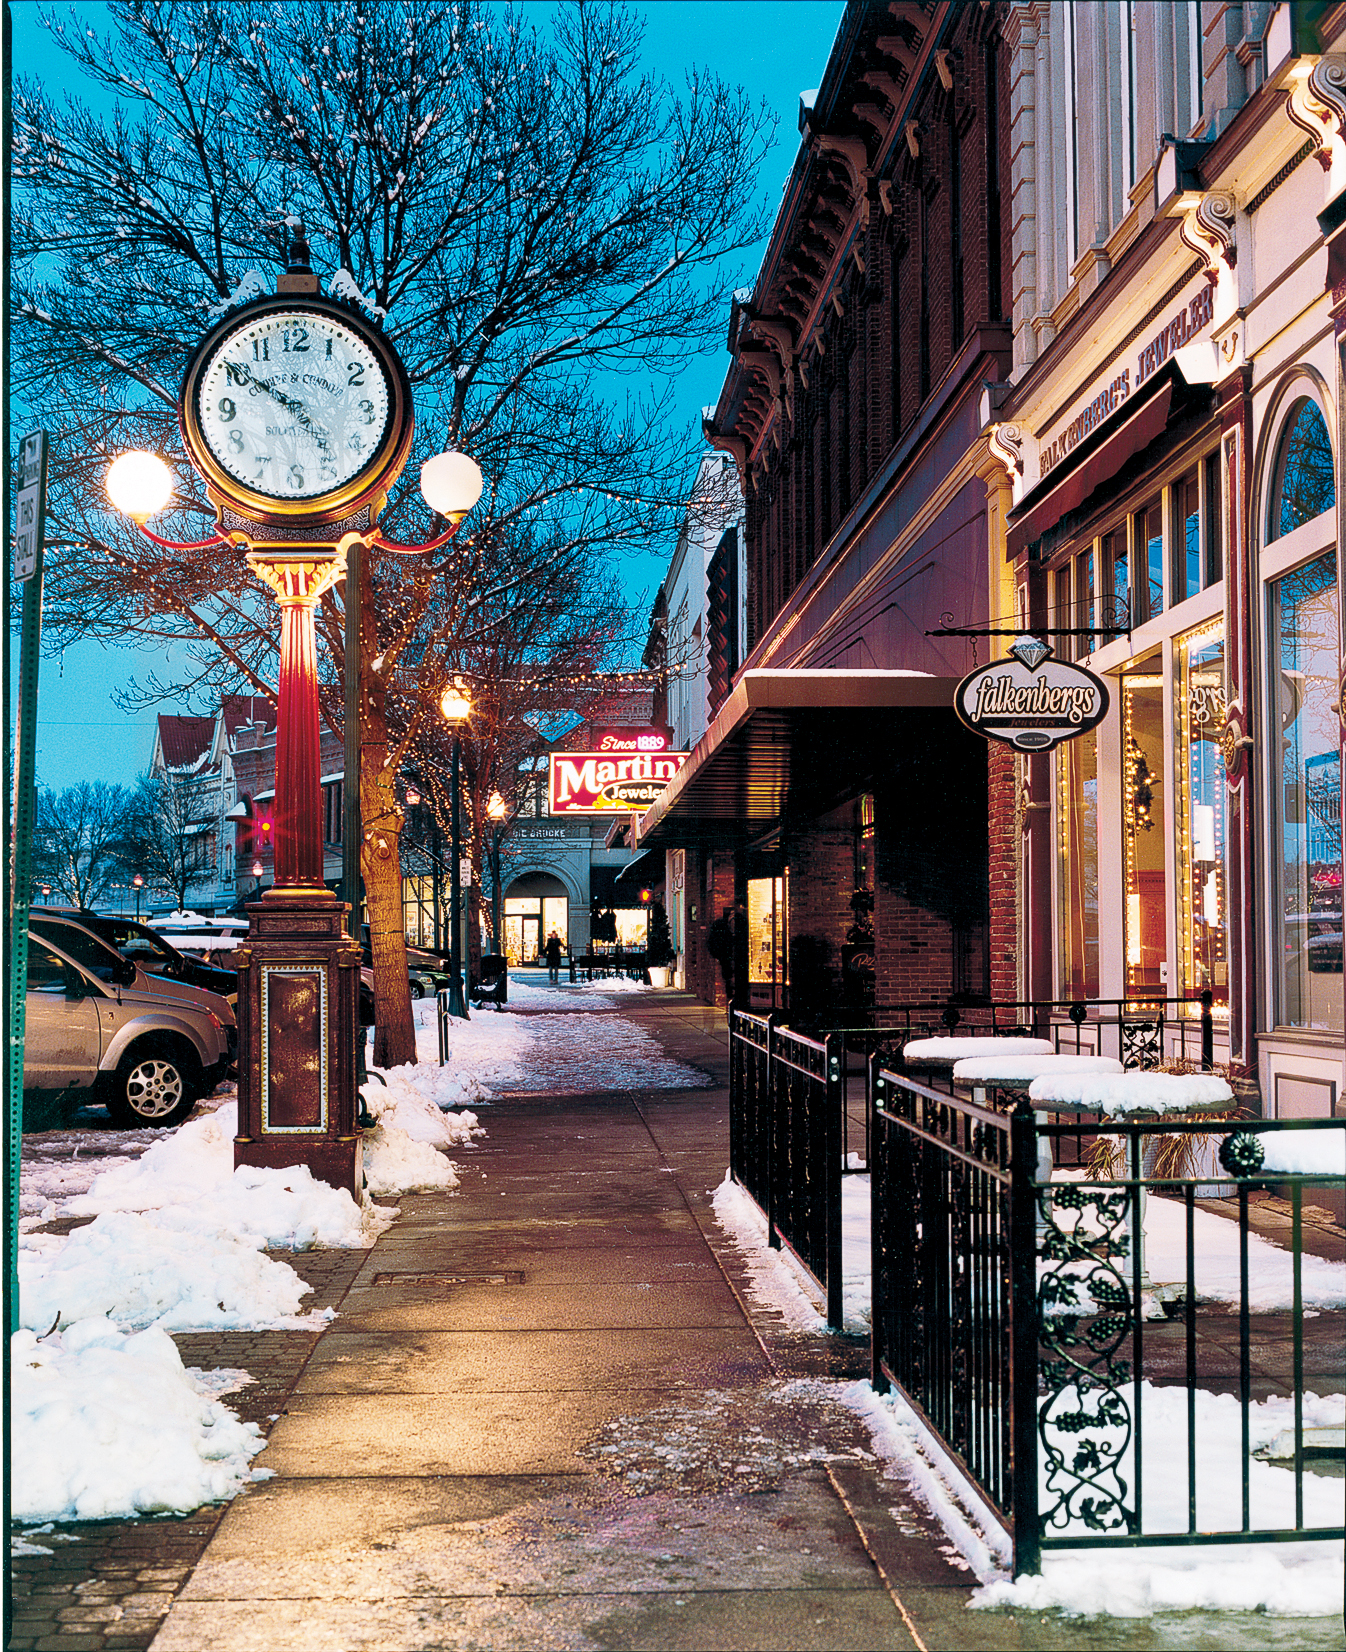 Walla Walla, Washington: Best Main Street